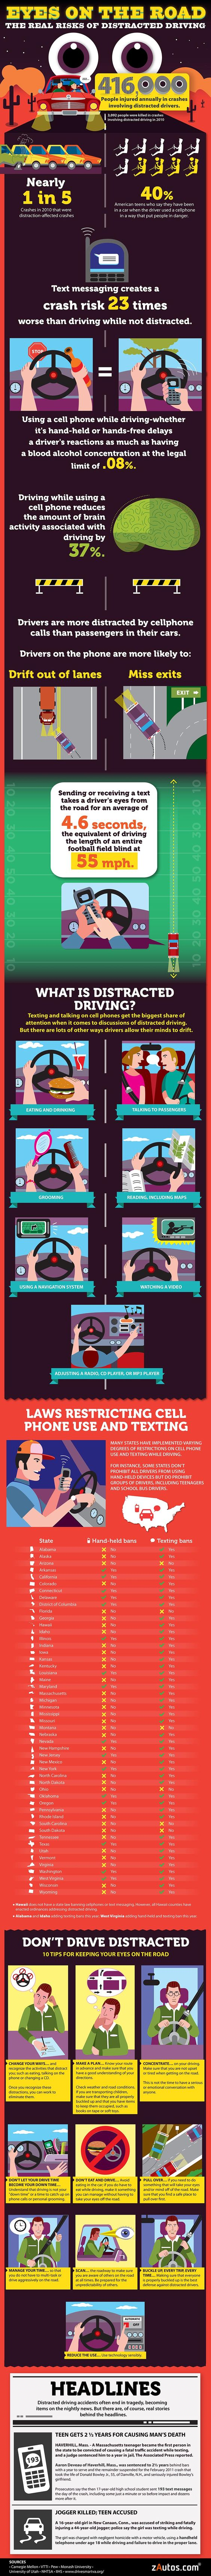 From Our Family to Yours Don't Drive Distracted, Infographic -Dangers of Distracted Driving